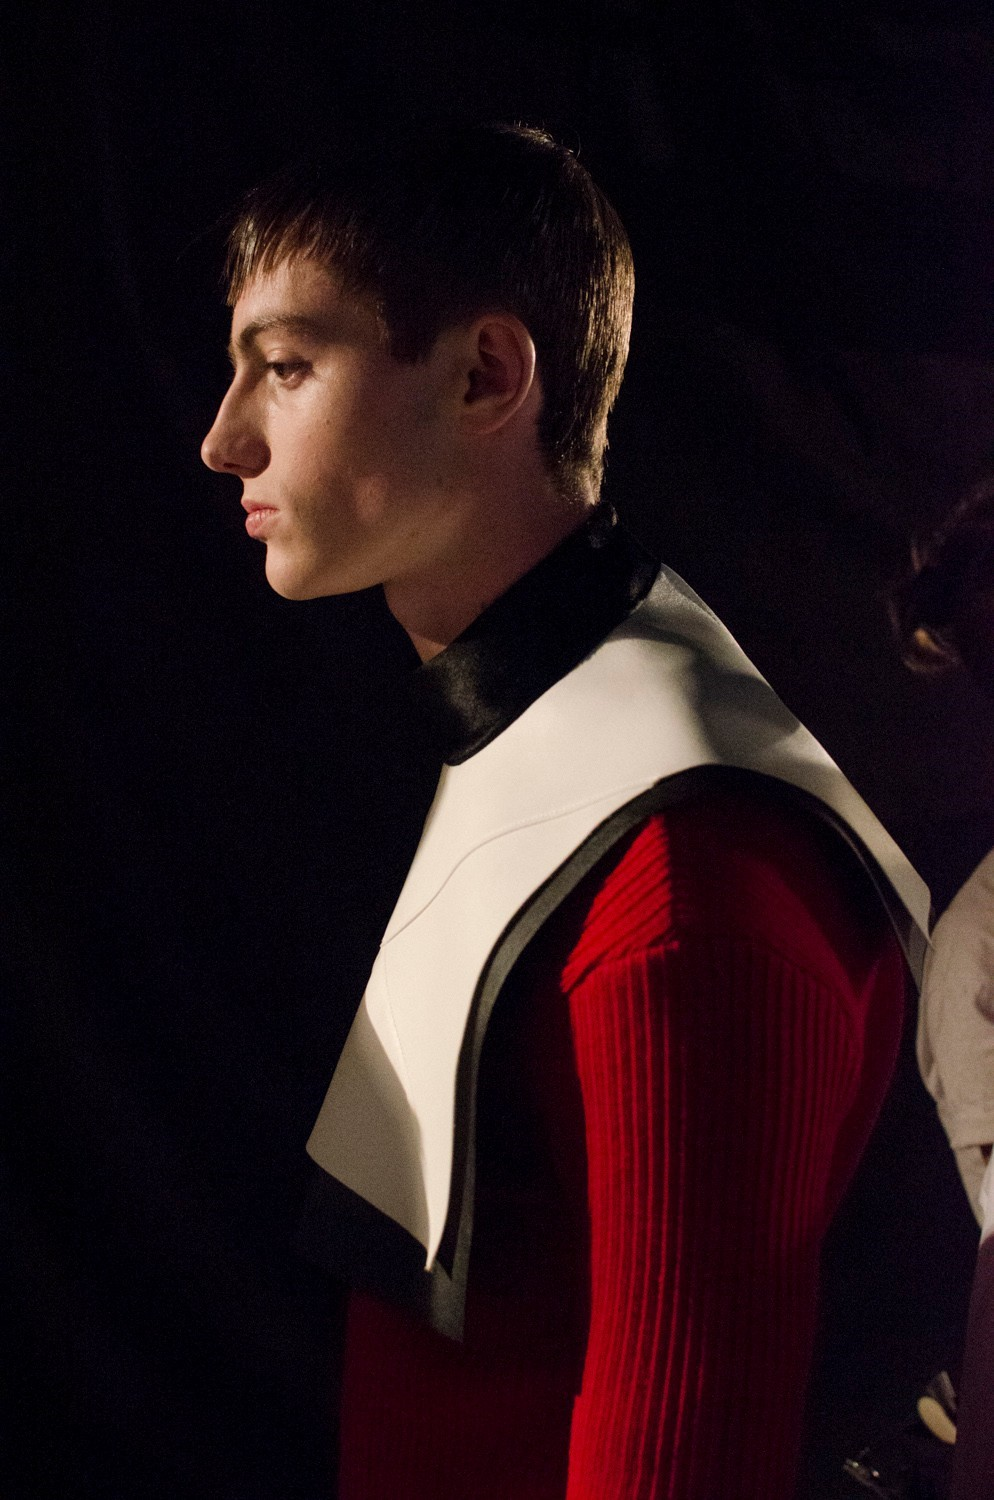 Nicomede Talavera SS15 Mens collections, Dazed backstage